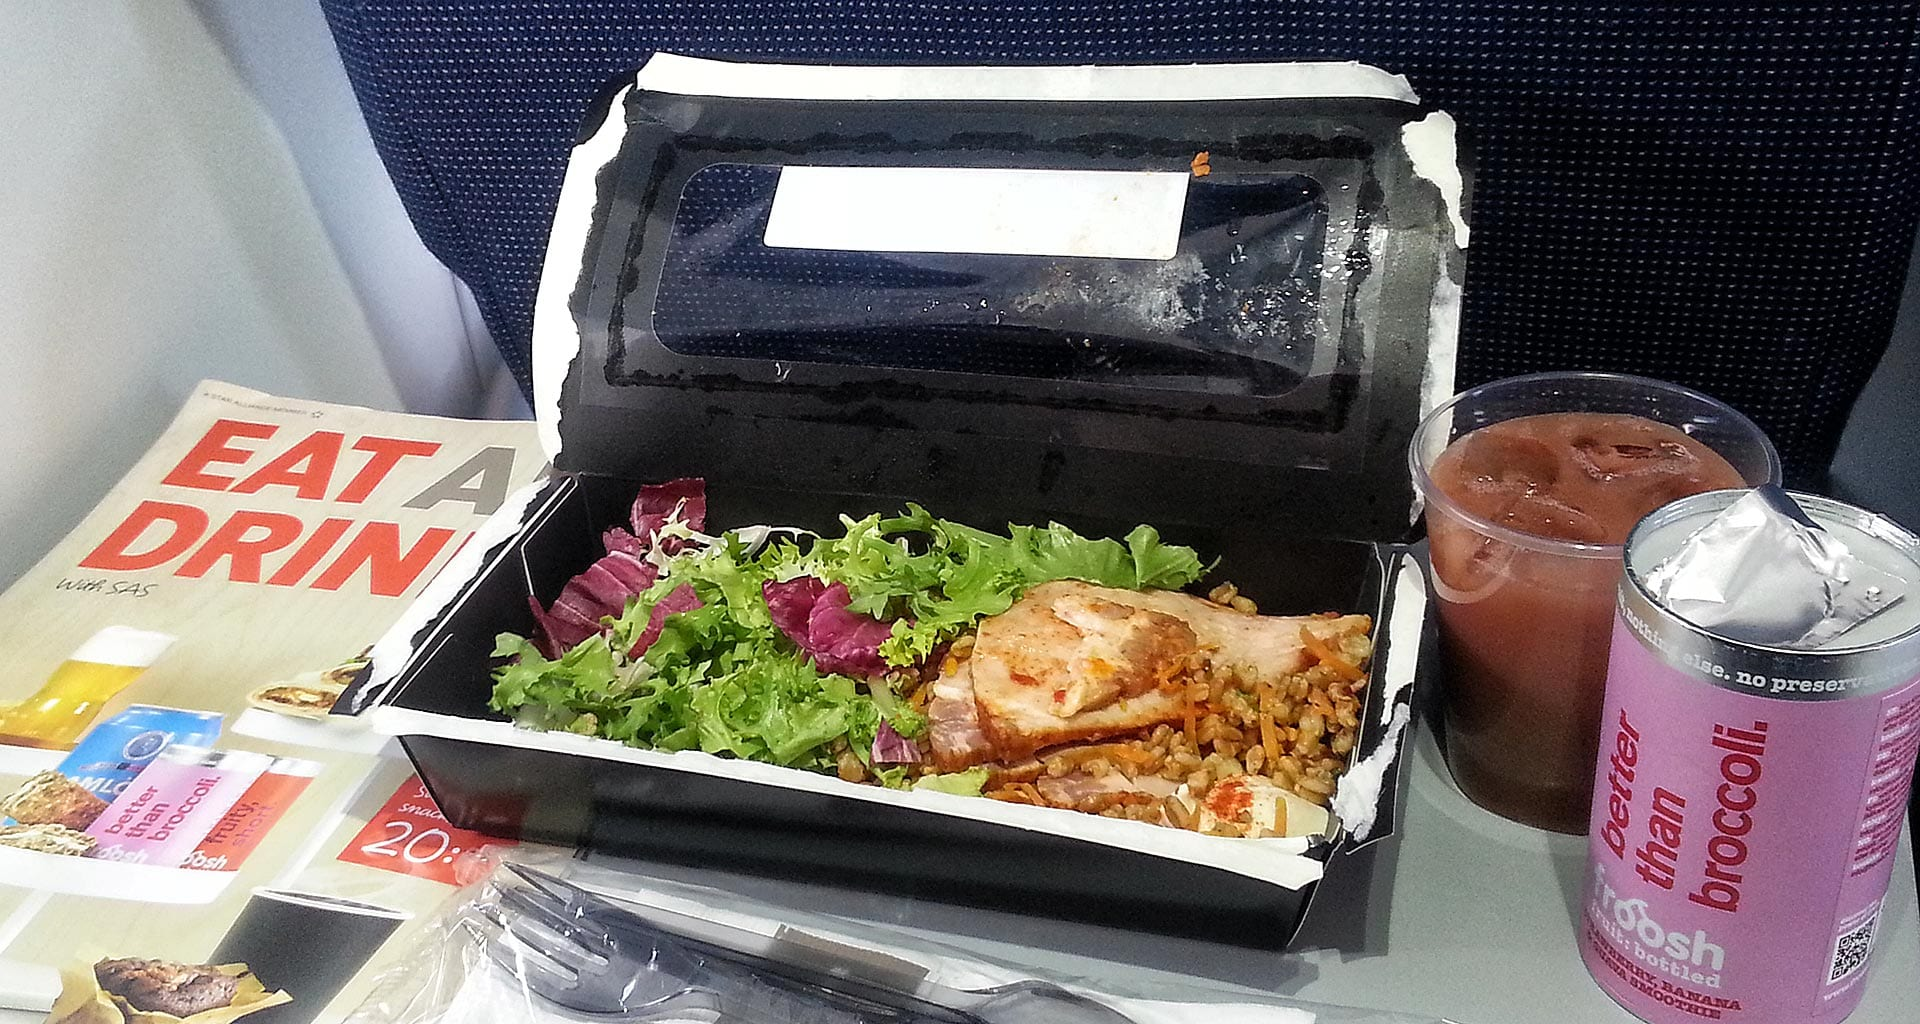 SAS inflight meals economy class salad and drinks